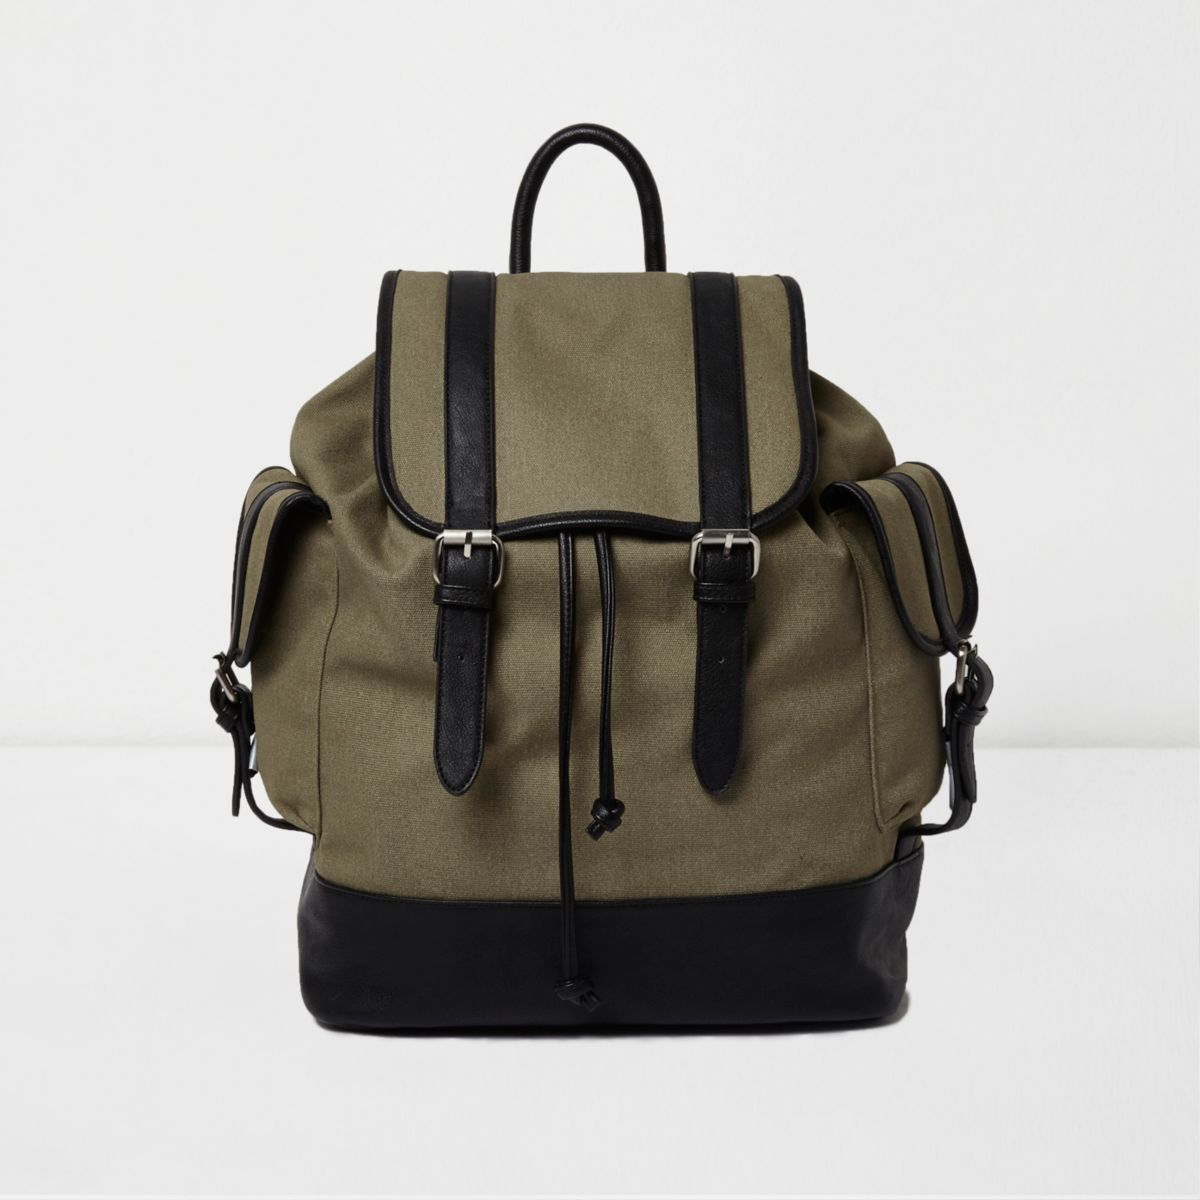 Khaki green canvas flap top backpack